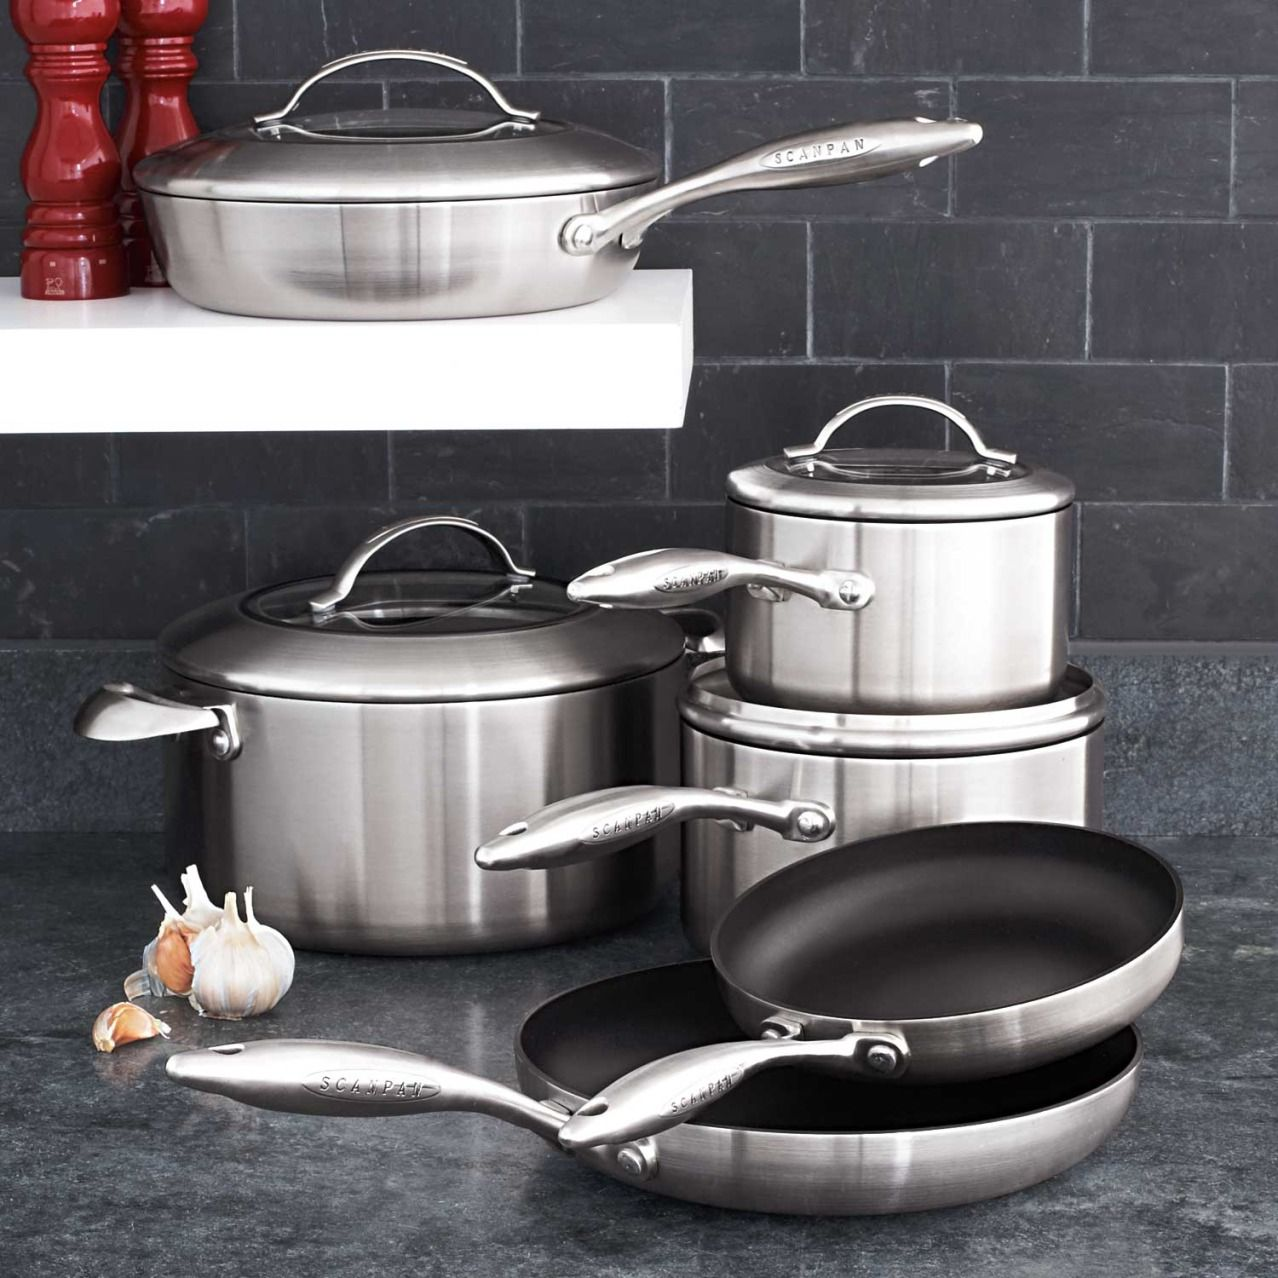 Scanpan CTX 10 Piece Nonstick Cookware Set at Sur La Table | For the ...